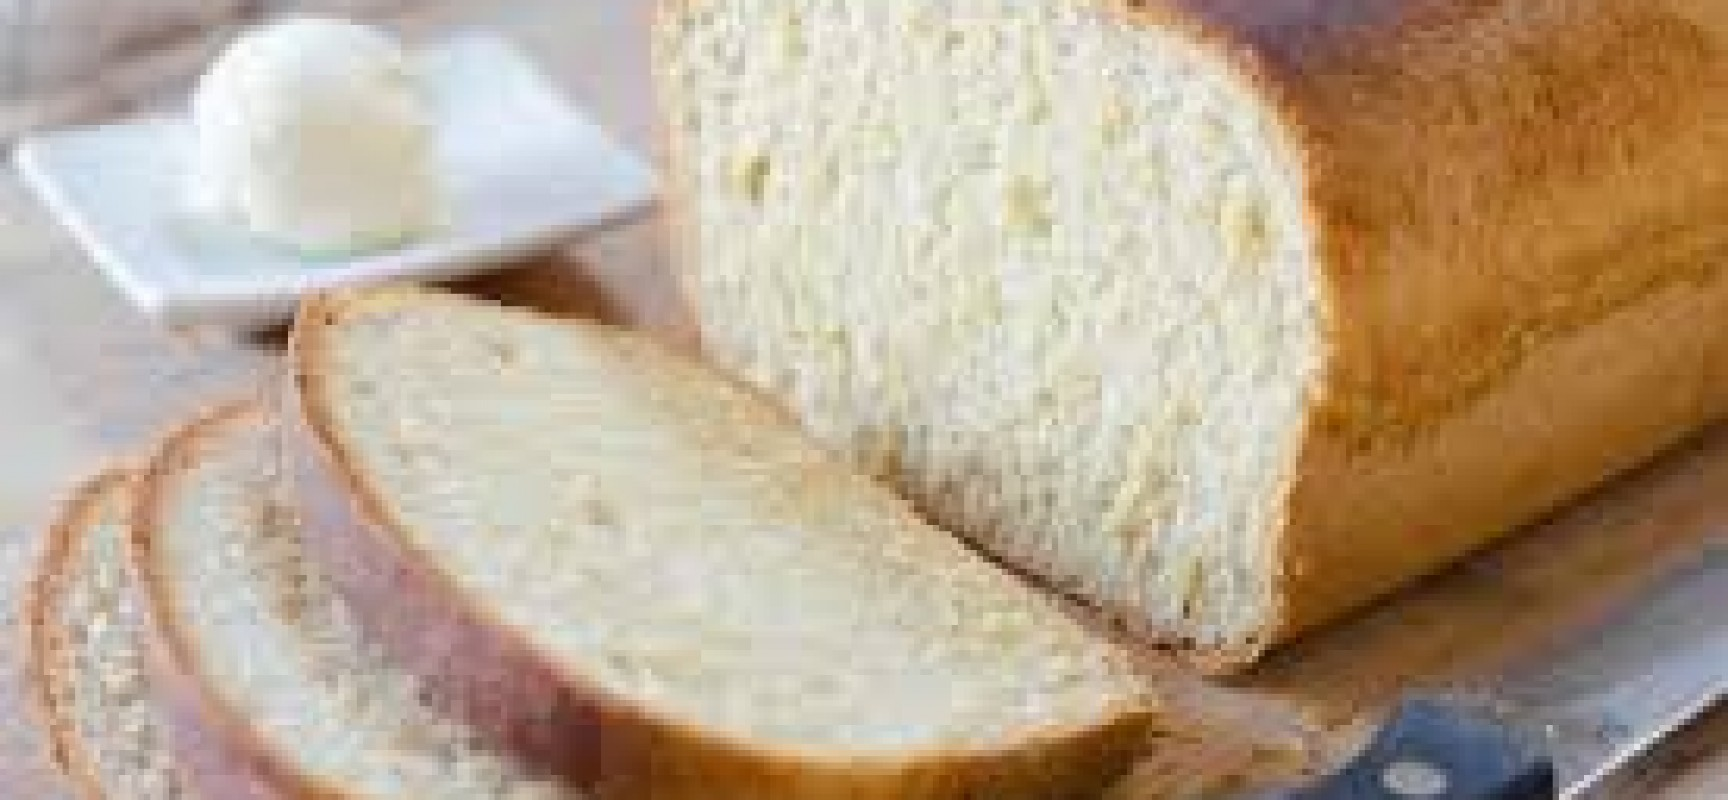 Go on and try some Bread based meal